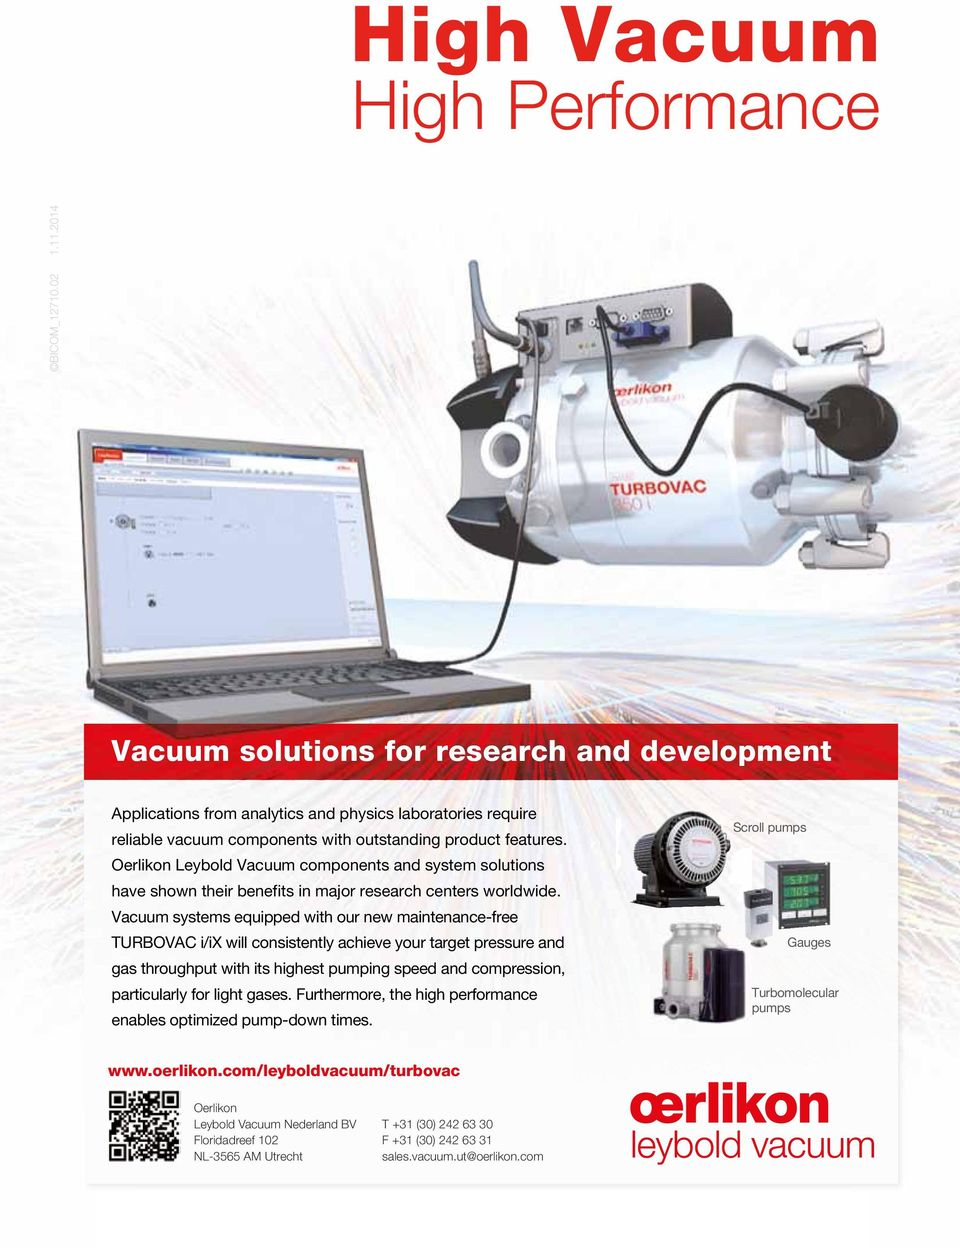 Oerlikon Leybold Vacuum components and system solutions have shown their benefits in major research centers worldwide.